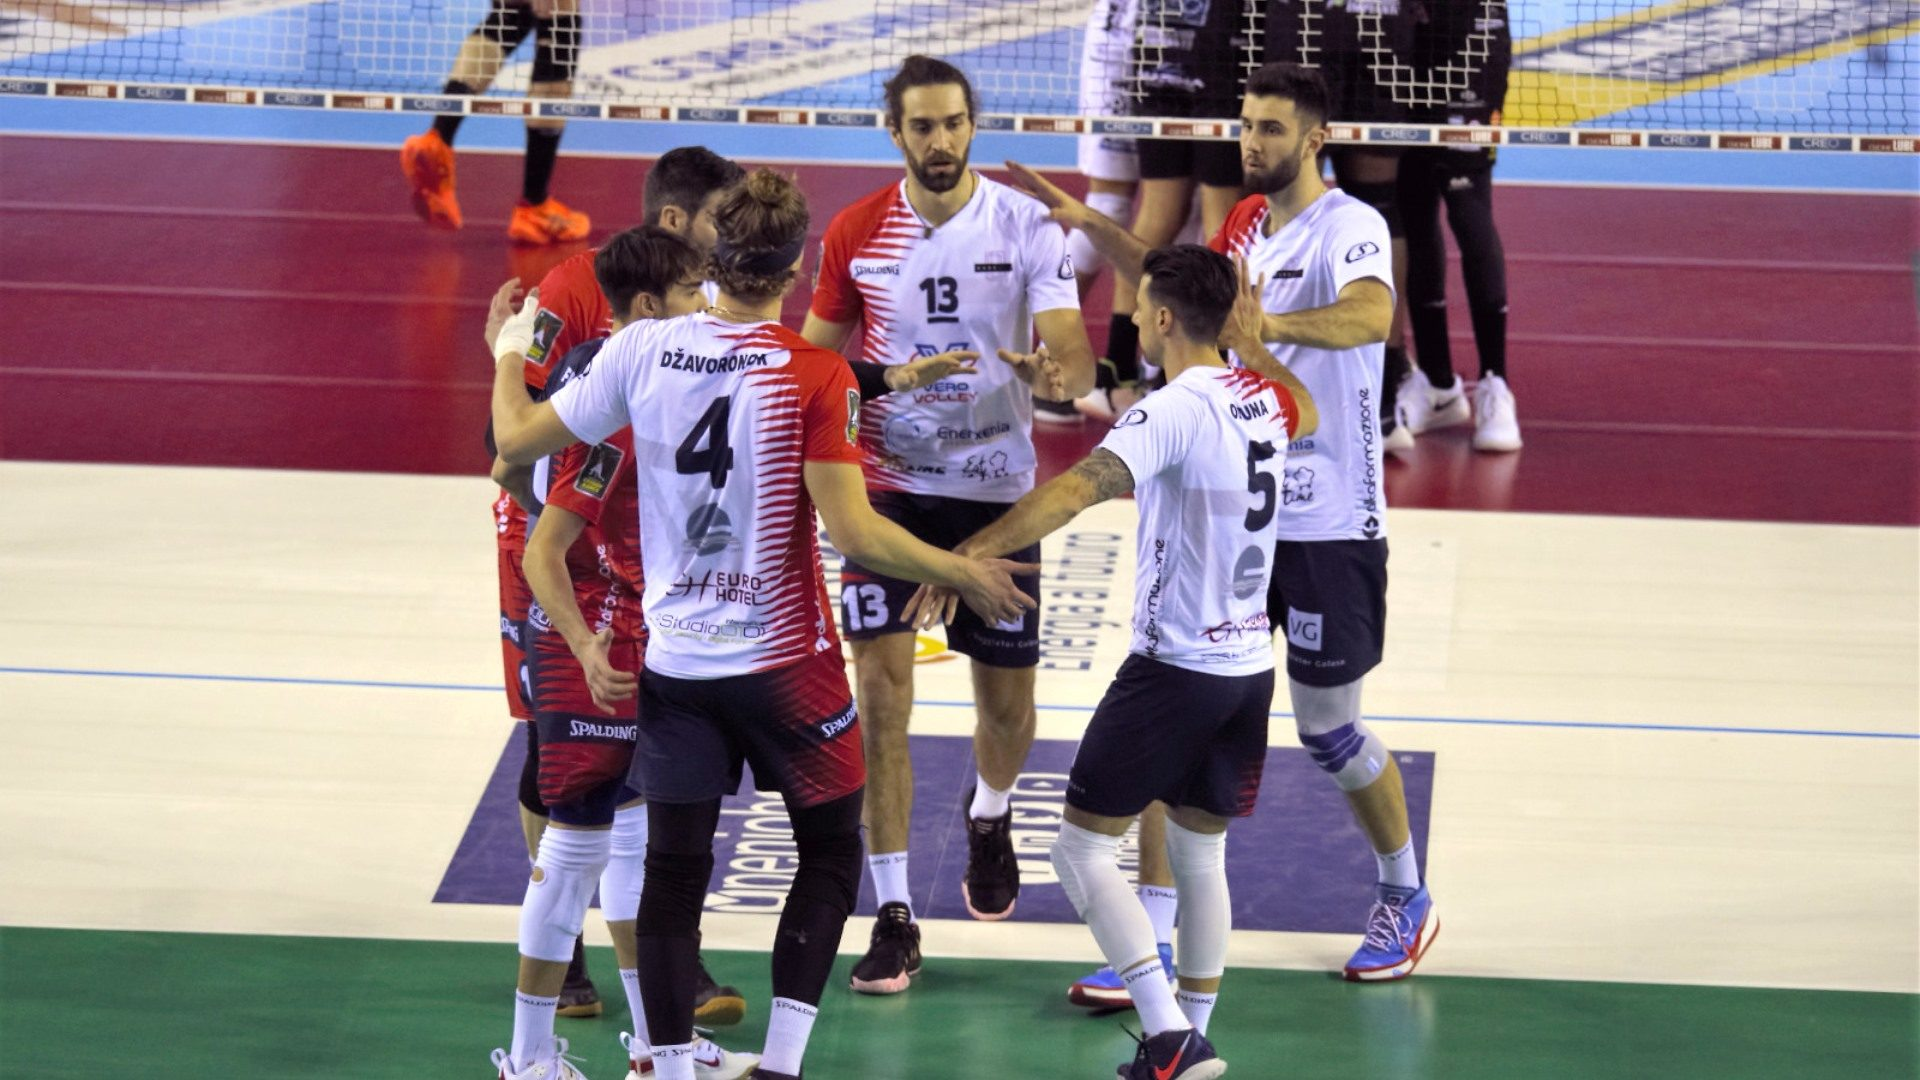 vero volley monza esultanza vs civitanova